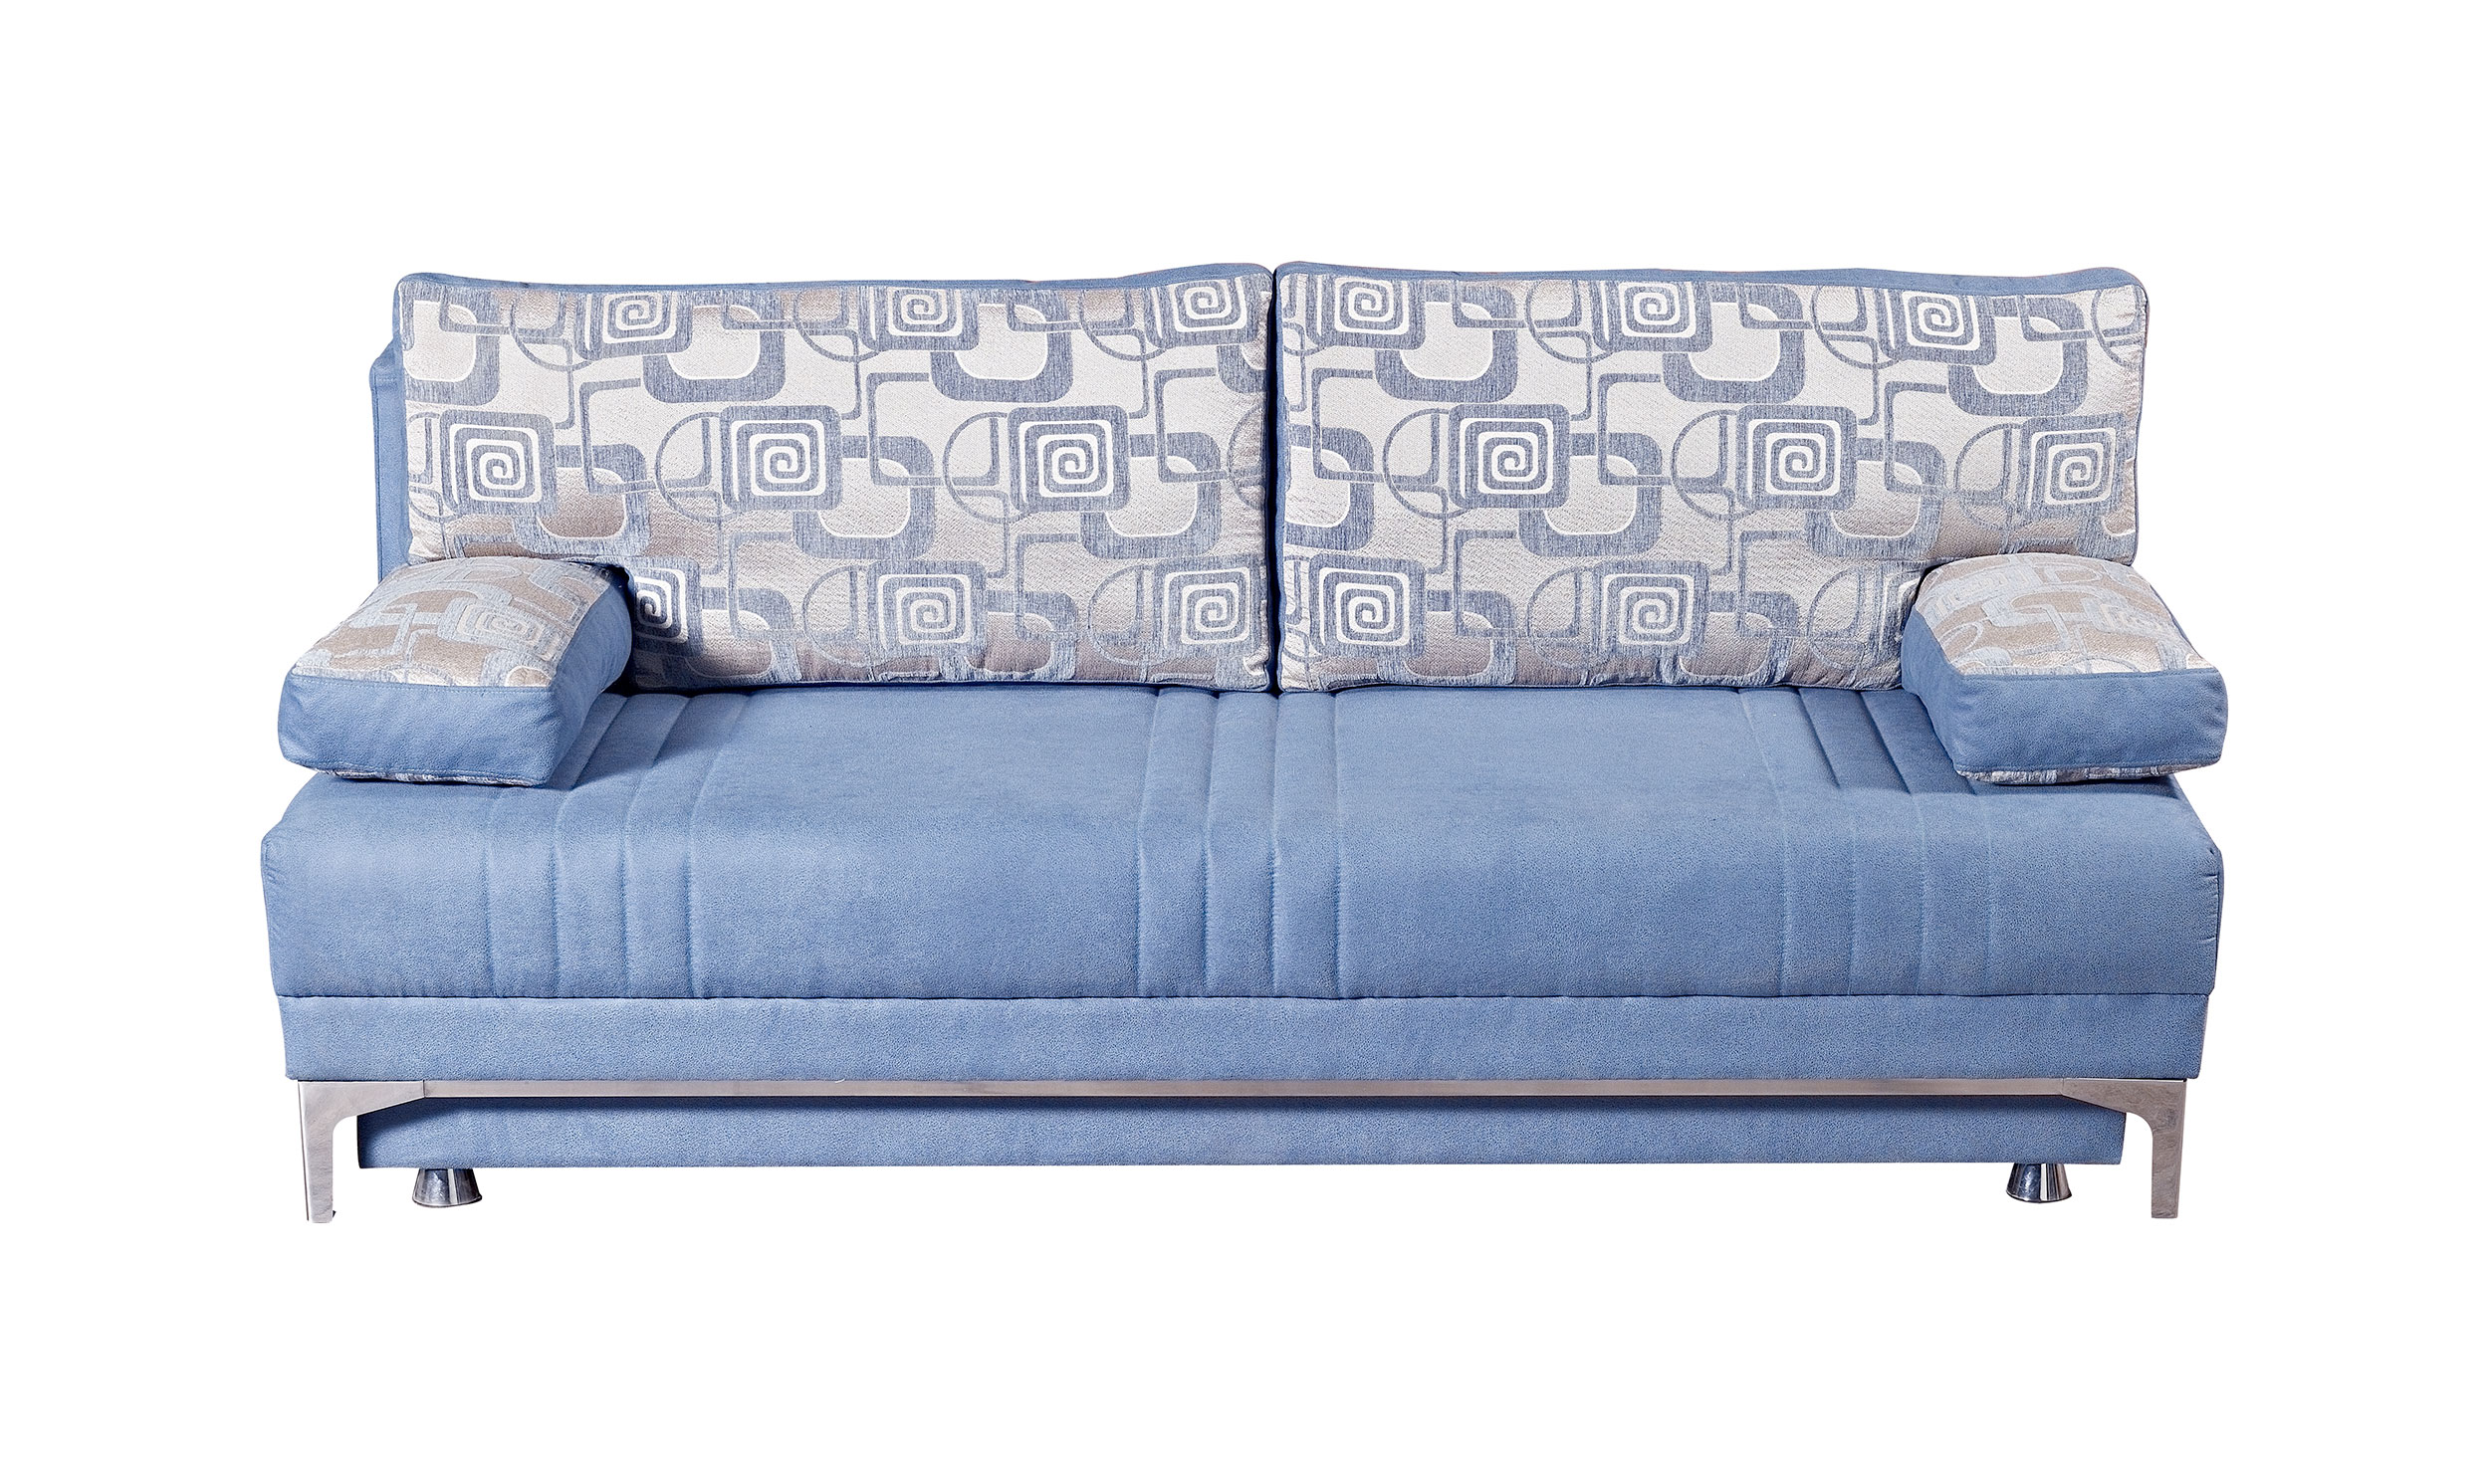 europa vintage blue queen size sofa bed by mobista. Black Bedroom Furniture Sets. Home Design Ideas